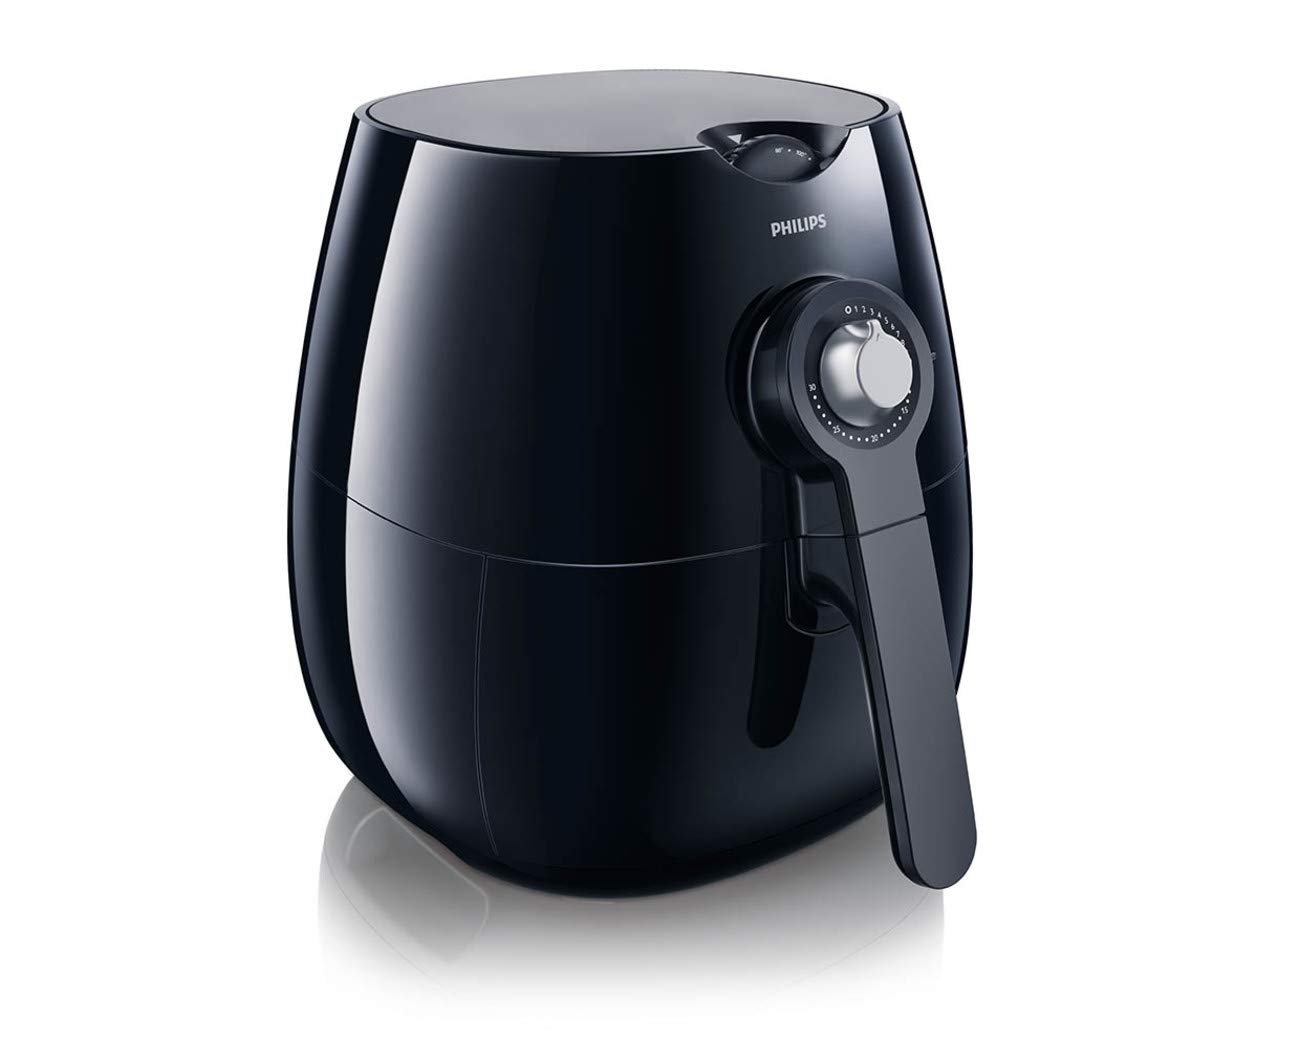 Philips HD9220/29 Airfryer, 1.8lb/2.75qt, Black